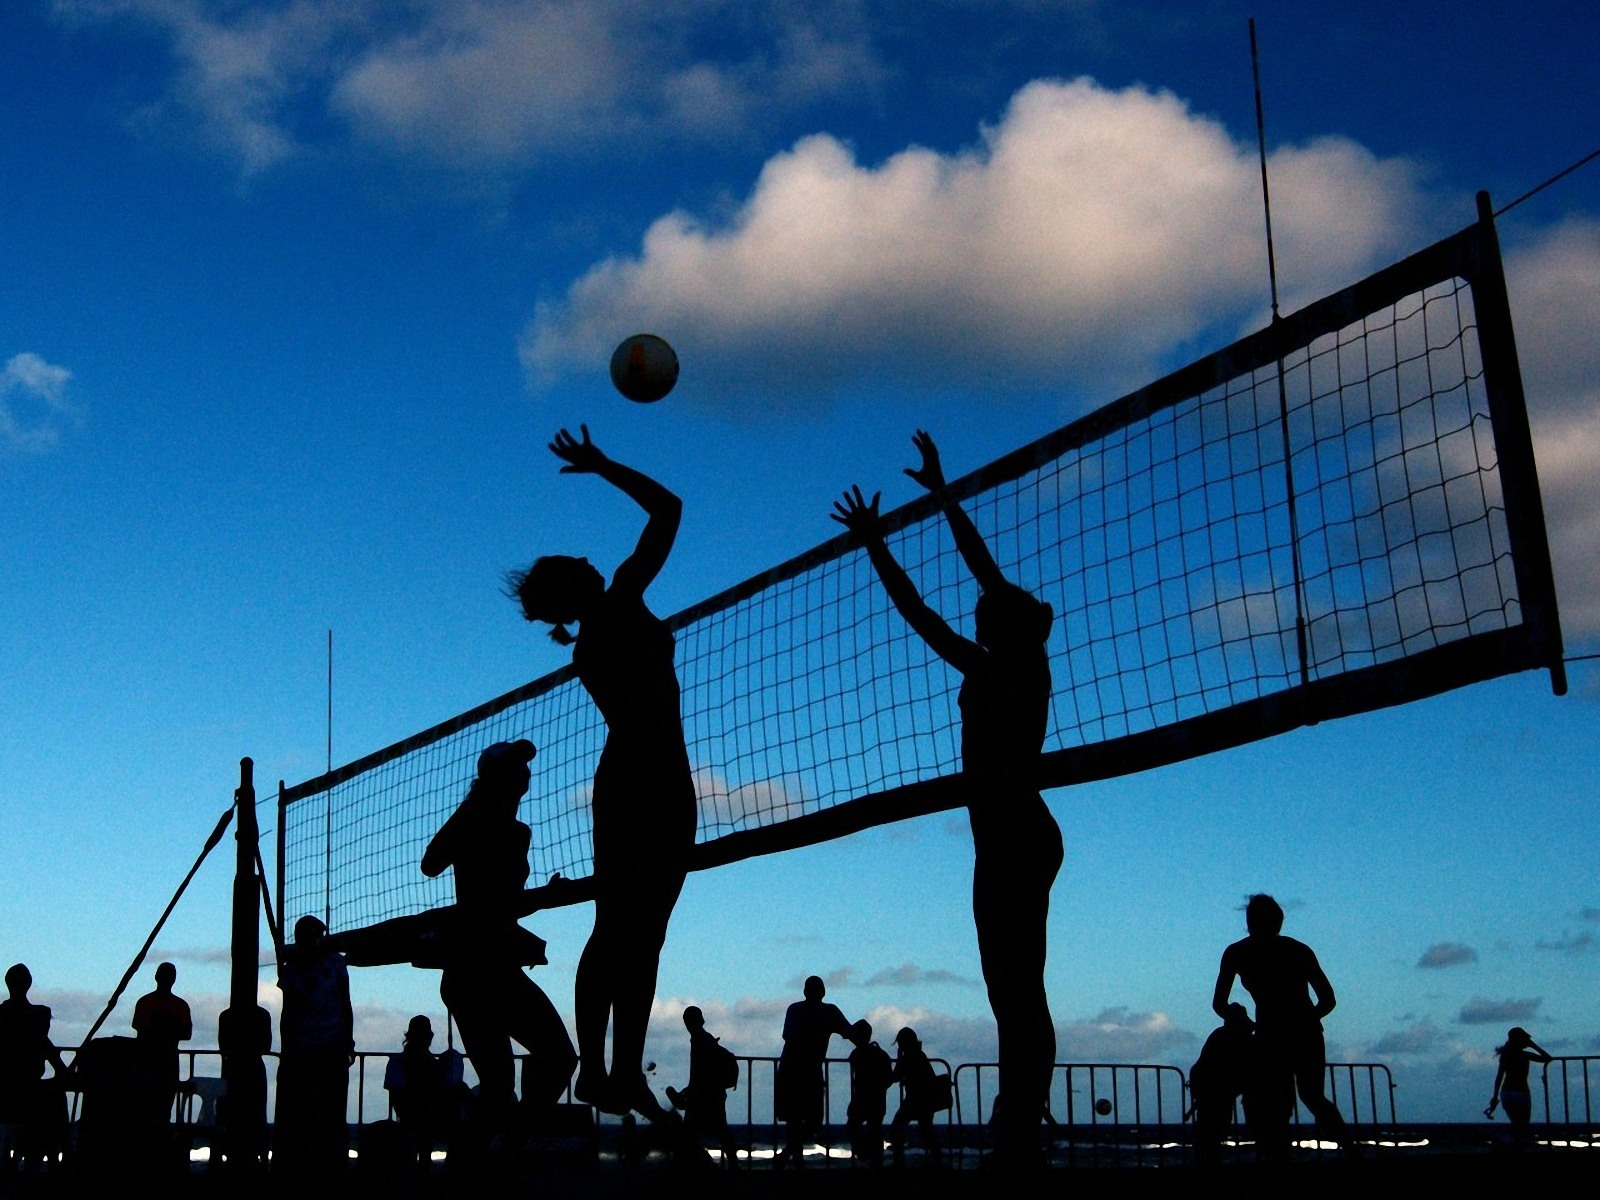 volleyball-hd-wallpaper-backgrounds-free-download-46